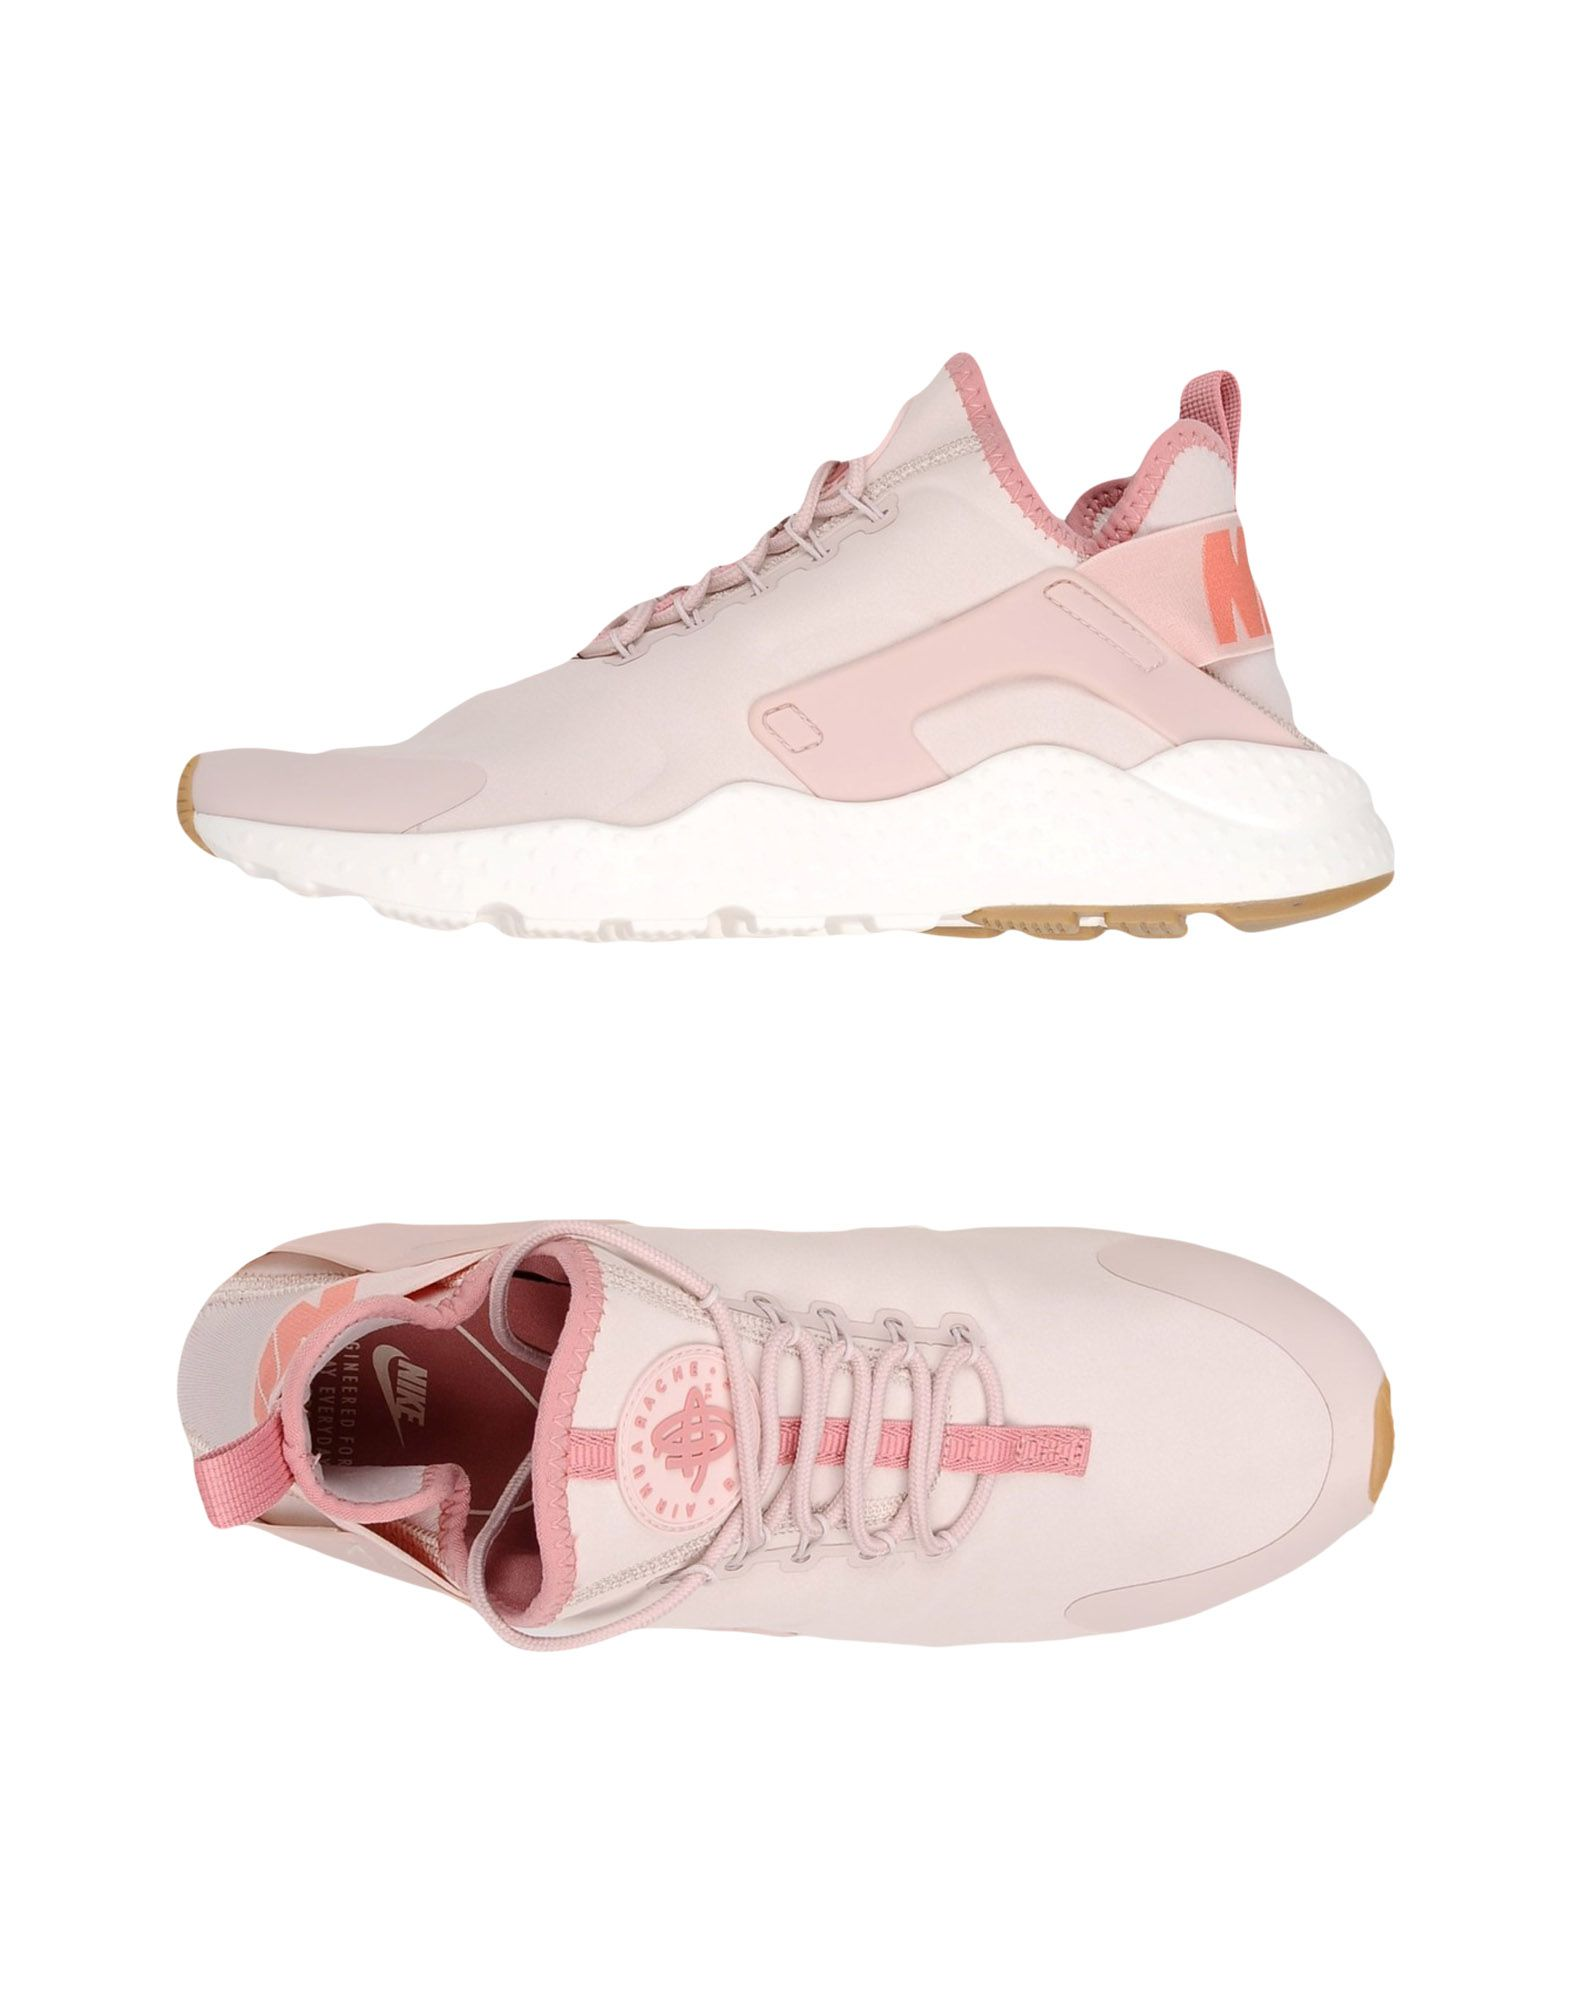 Sneakers Nike Air Huarache Run Ultra Premium - Femme - Sneakers Nike sur